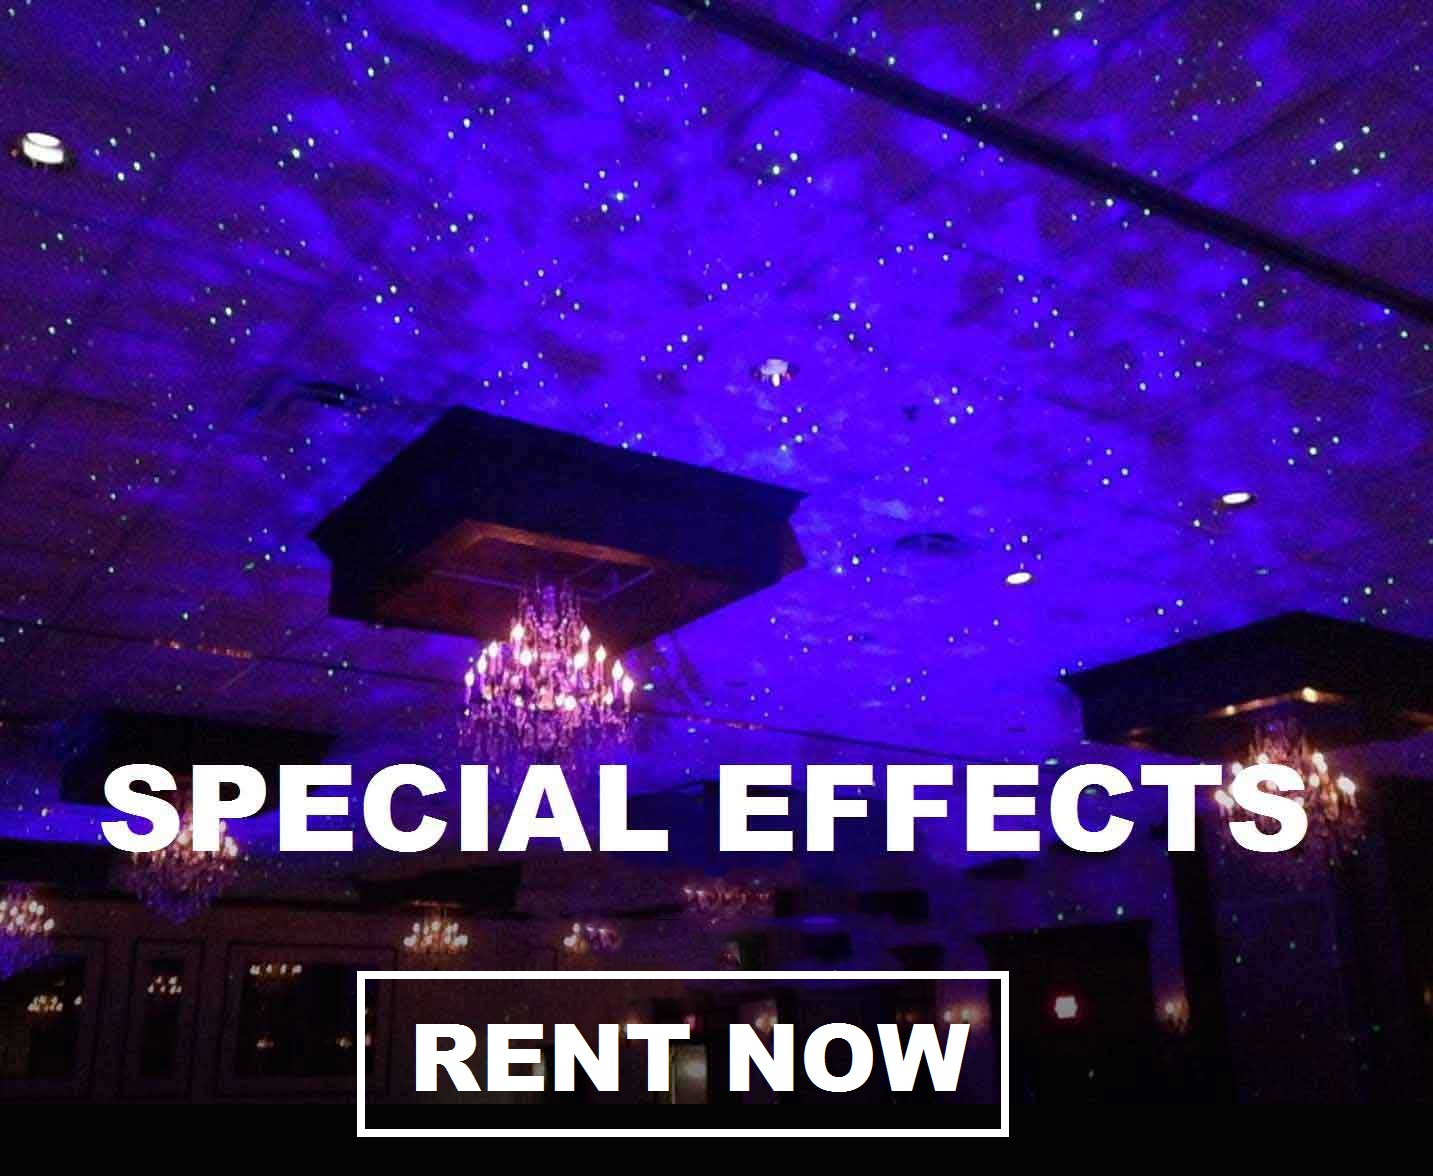 Lighting Effects Specialist Nationwide Wedding And Event Rentals With Free Shipping